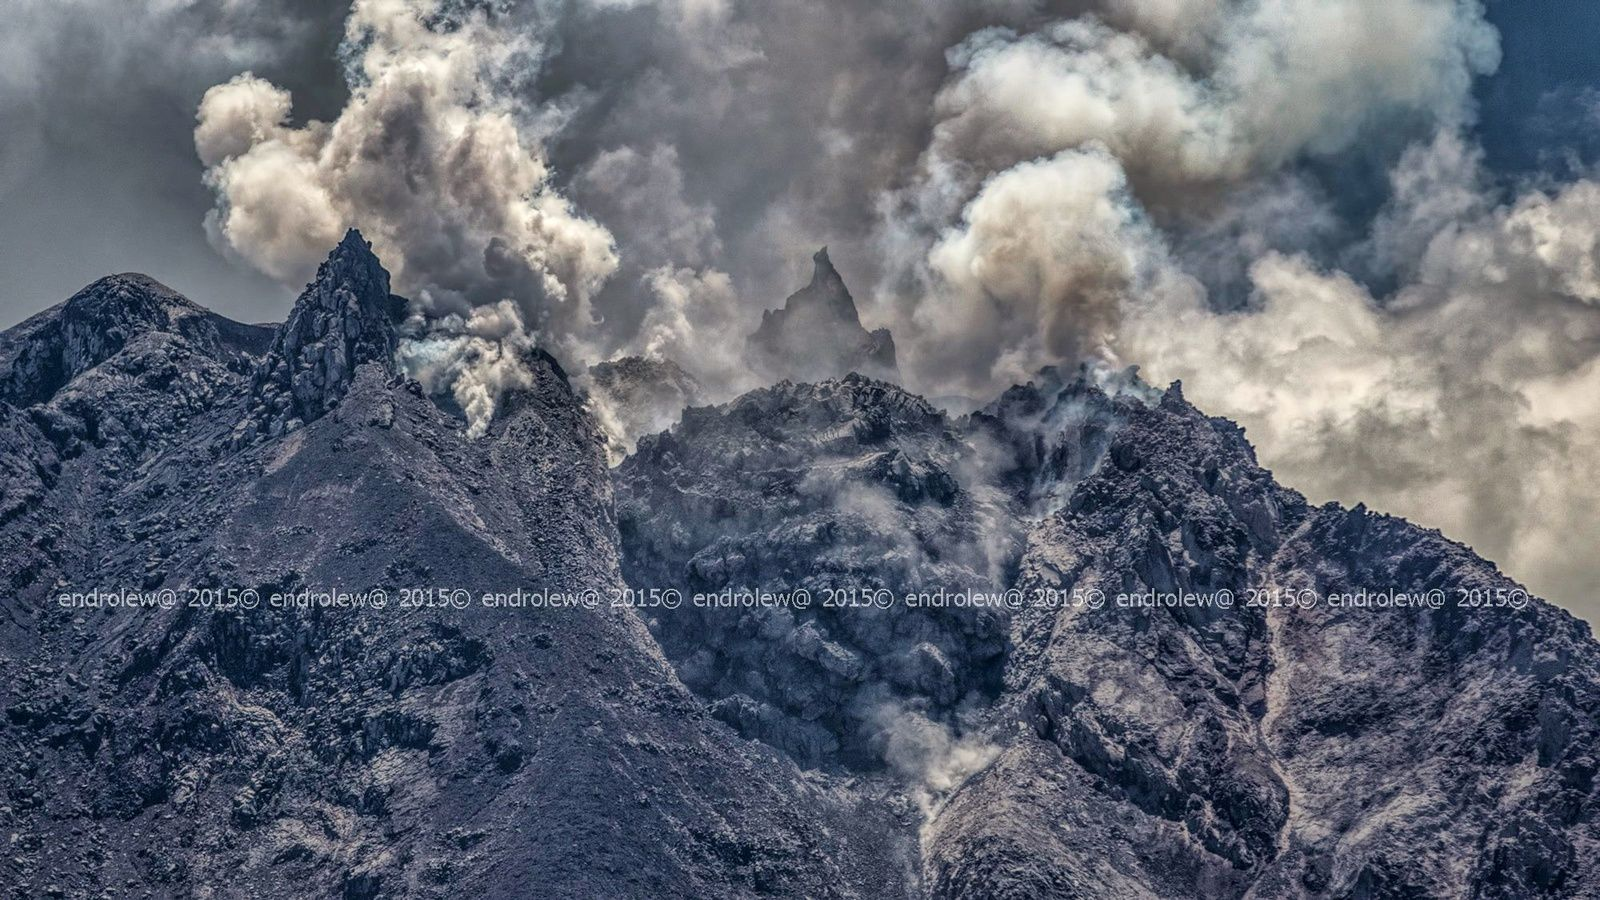 Sinabung Summit, with the lava lobe 13.05.2015 / 24:40 - photo endrolew @